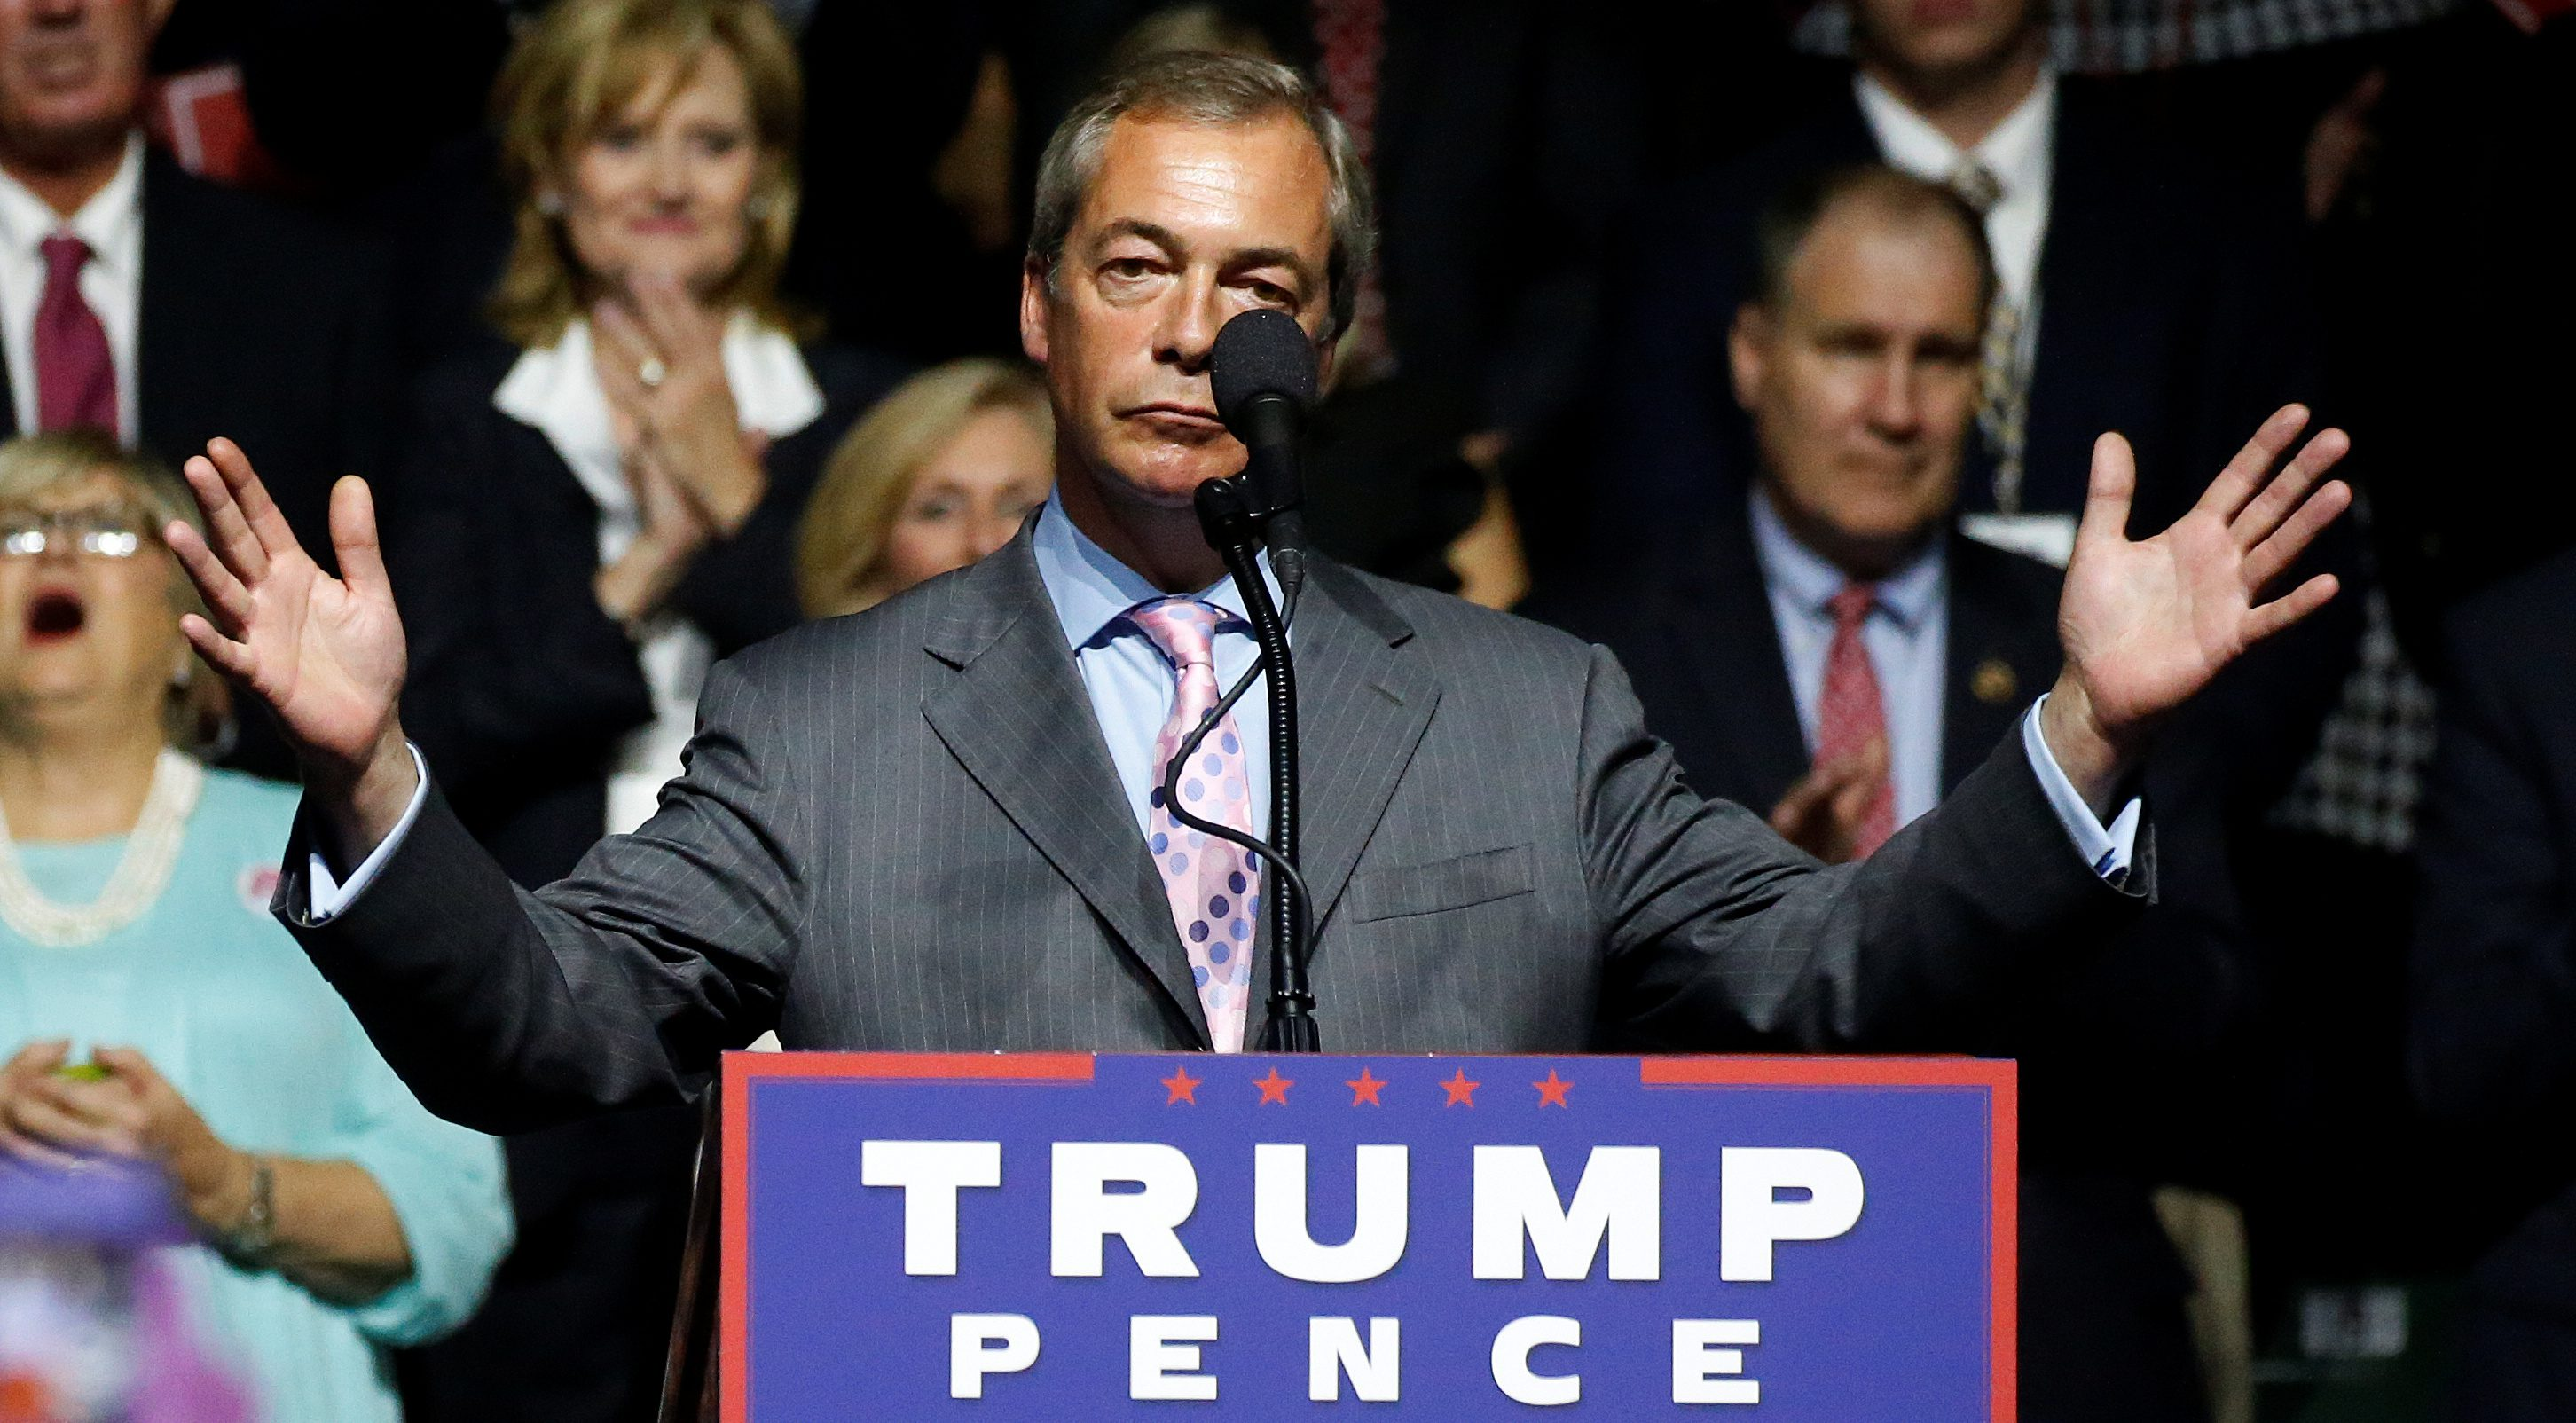 European Parliament Nigel Farage speaks during a Republican presidential nominee Donald Trump campaign rally in Jackson, Mississippi, U.S., August 24, 2016.   REUTERS/Carlo Allegri - RTX2MXP6